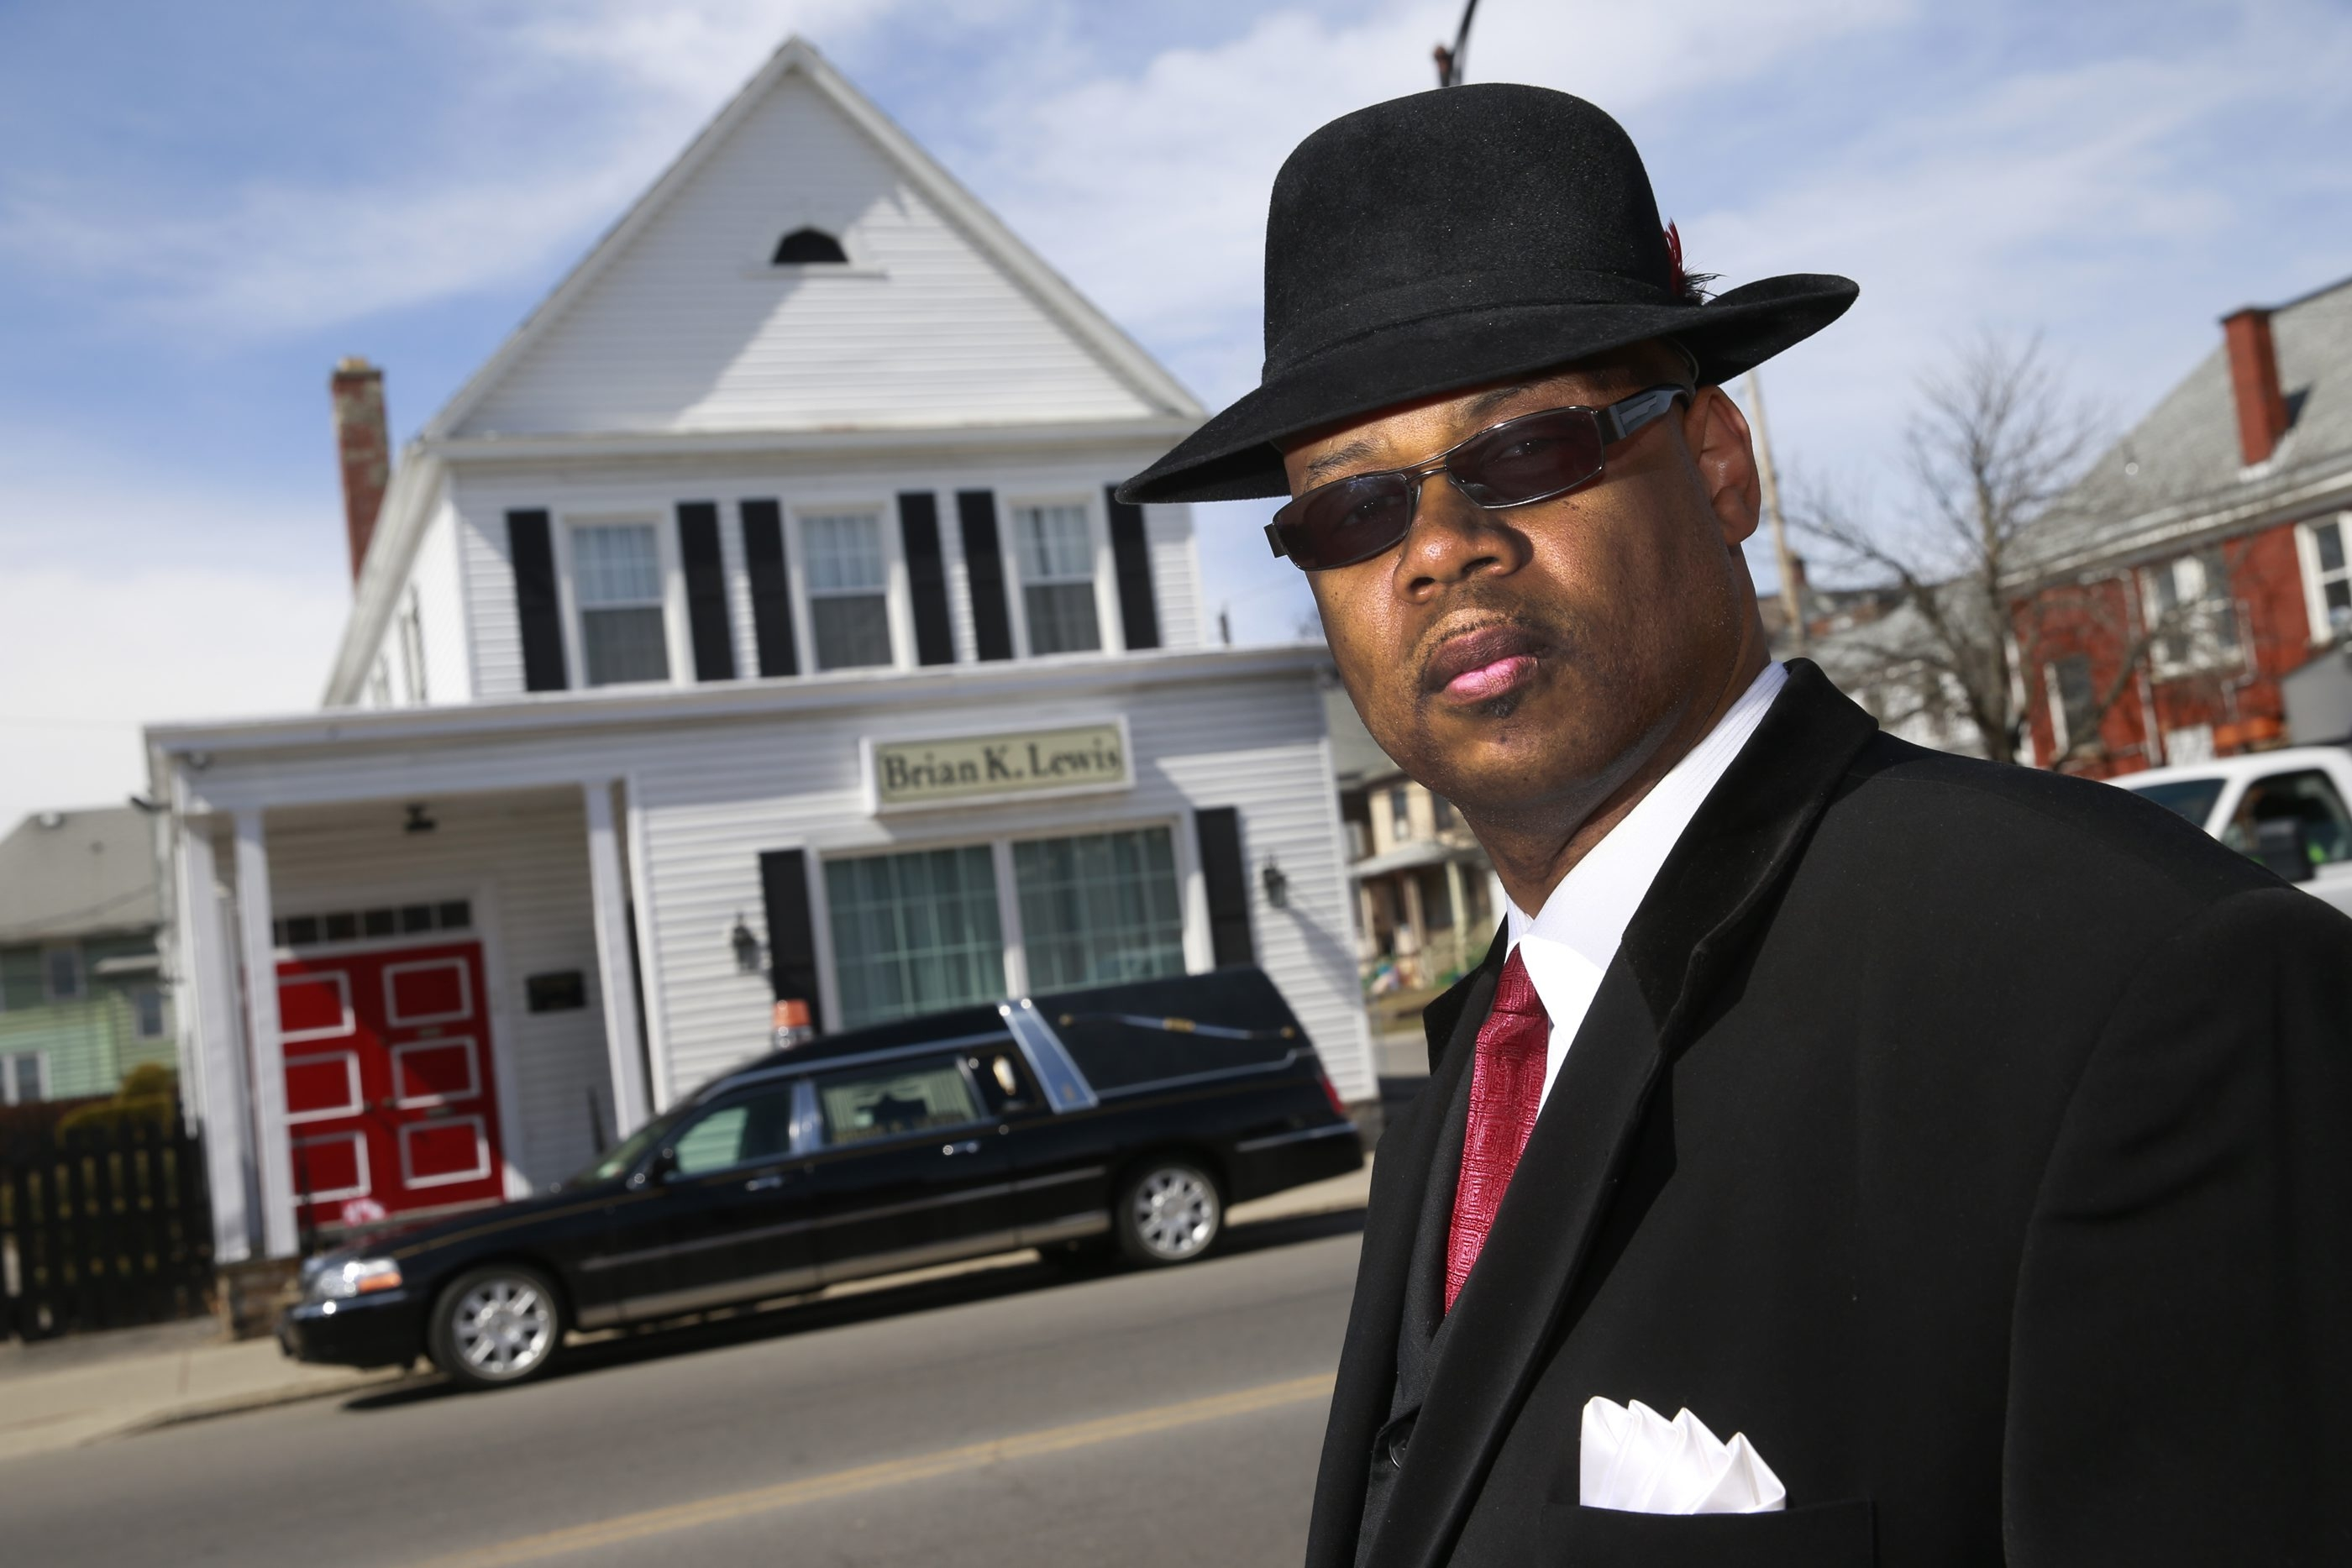 Cultural changes hitting area s black funeral homes – The Buffalo News 94a4cbf483f